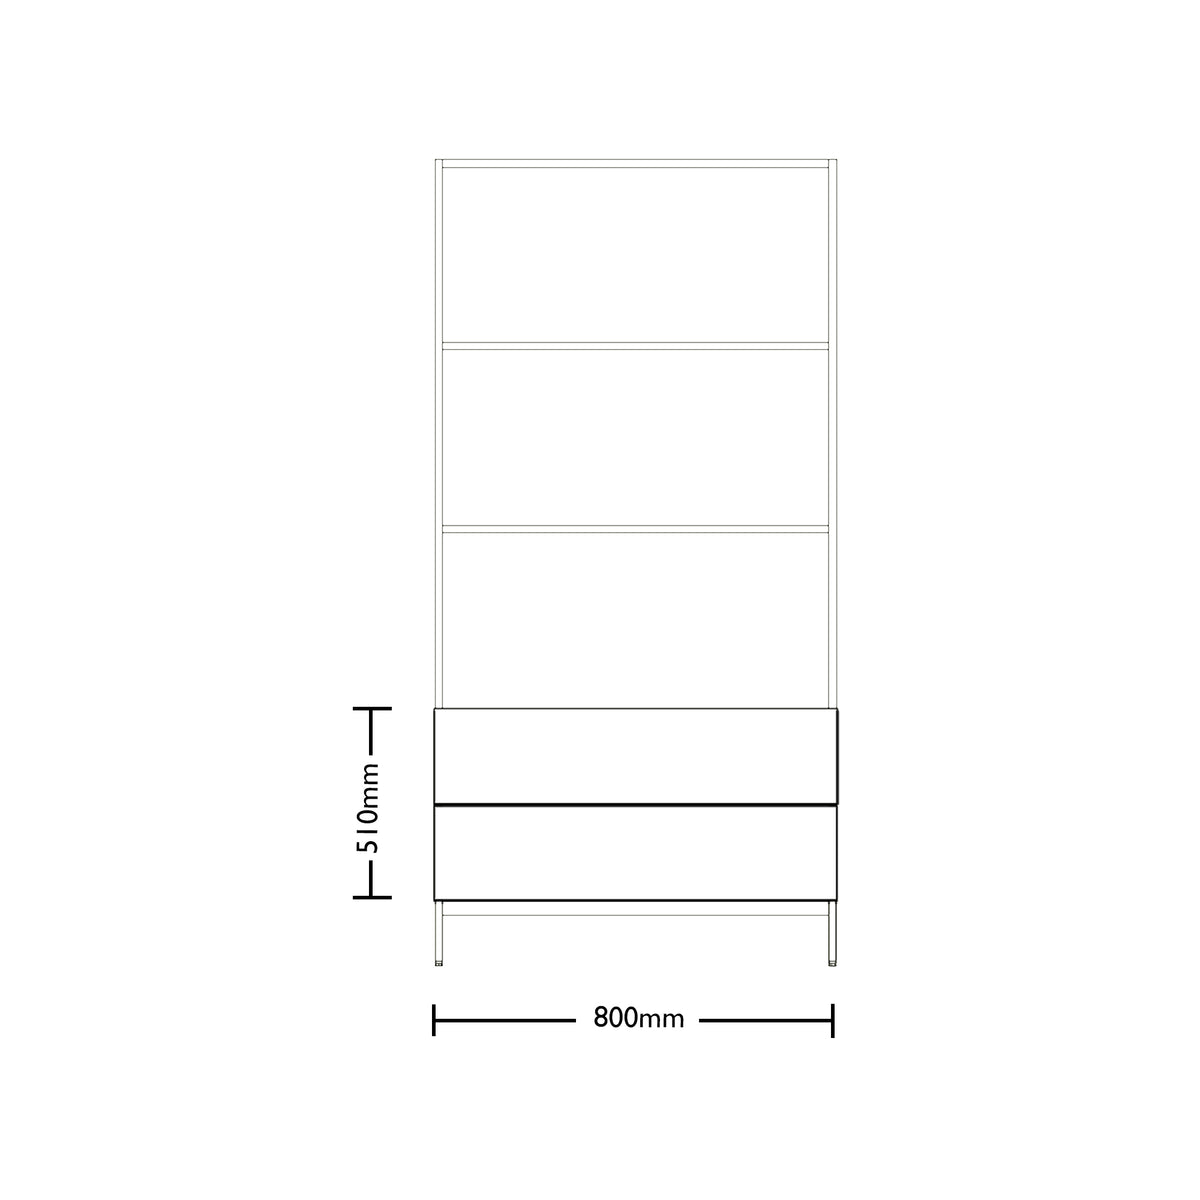 Dimensions for Edsbyn Office Neat Green Planter Box with Black Base 800mm